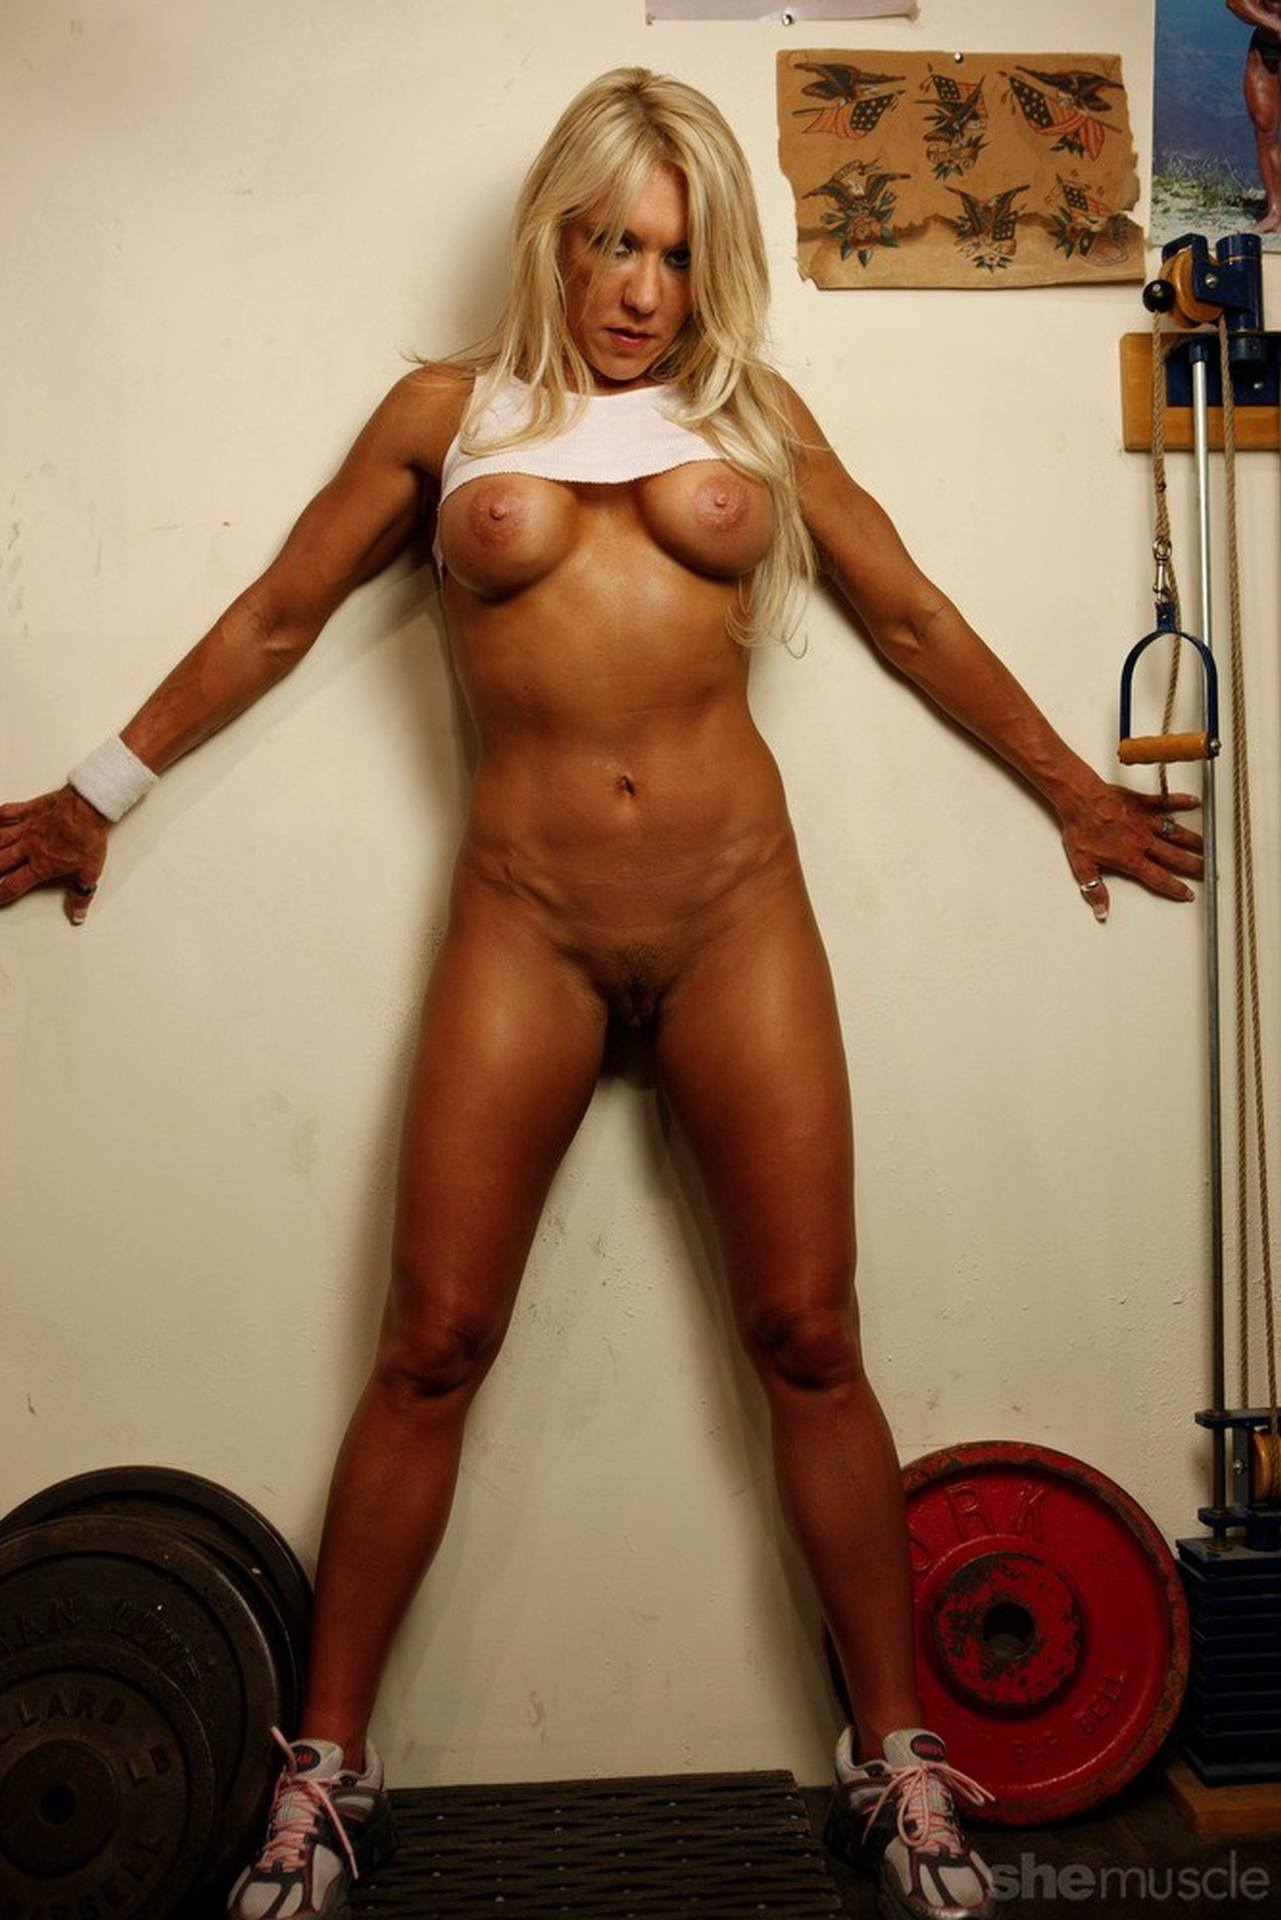 SheMuscle Featuring Samantha, Blonde bodybuilder Samantha, Blonde bodybuilder, Samantha, SheMuscle, female muscle, female bodybuilder, muscle babe, MuscleBabes.WandererX.net